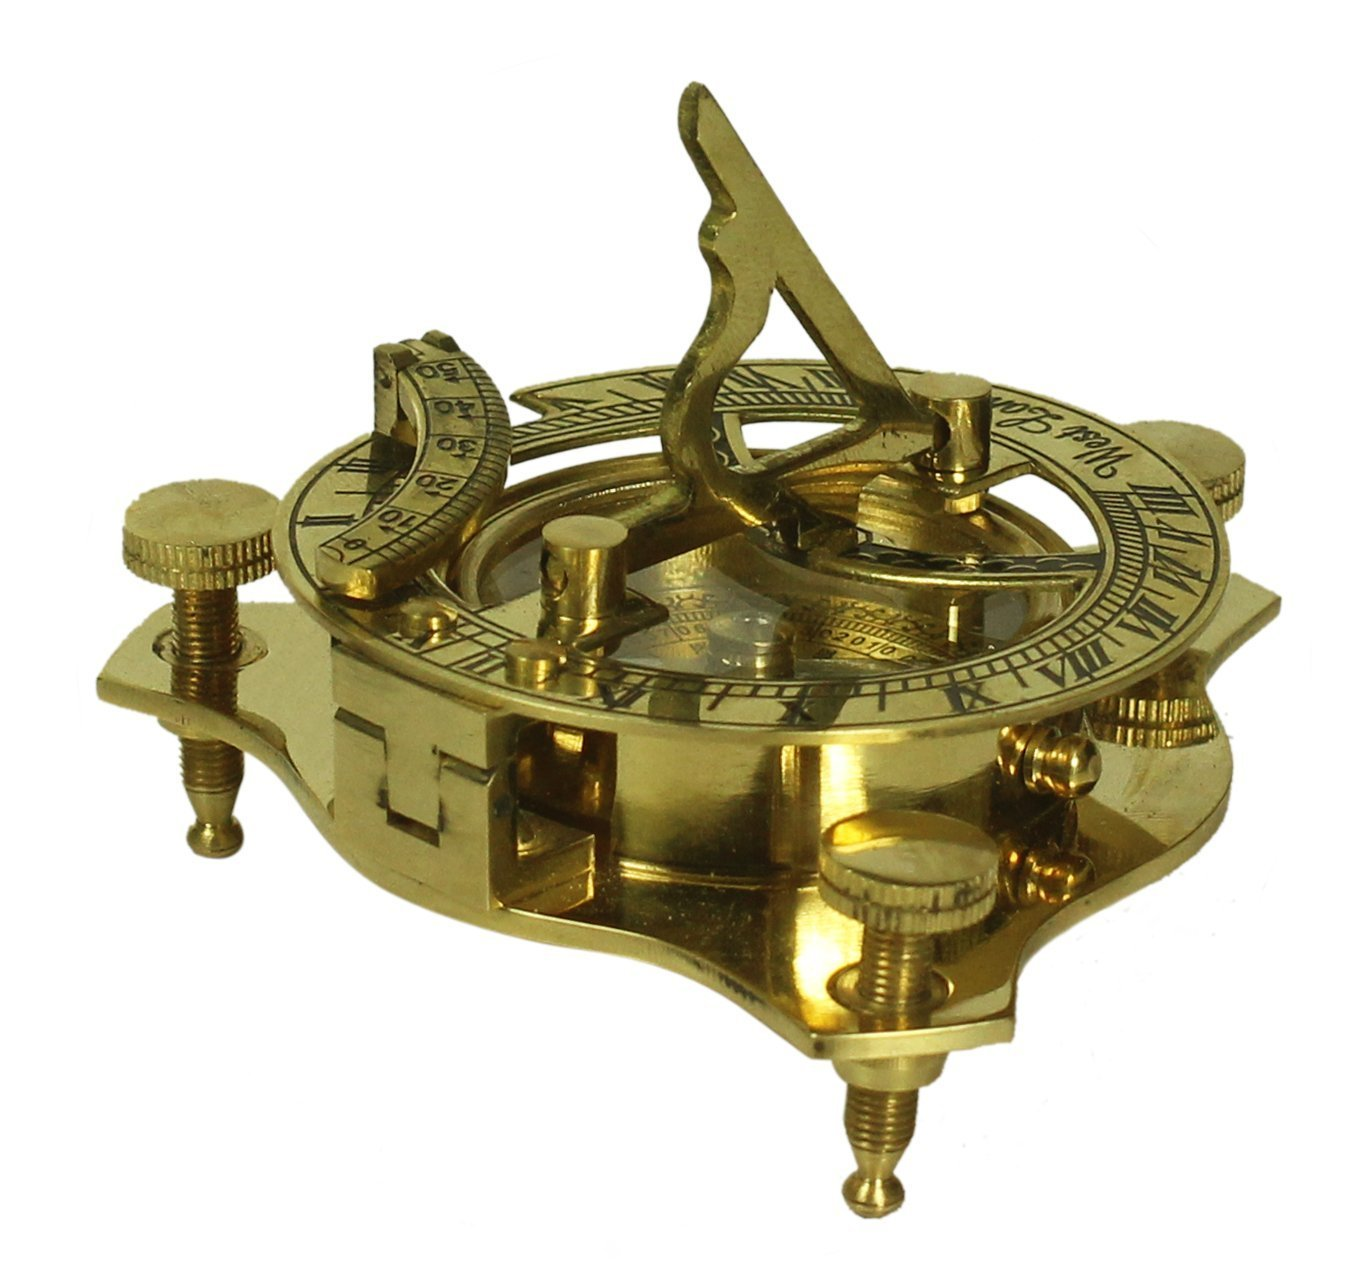 Clearance Sale on 3''Brass Compass Nautical Device - Maritime Golden-Tone Vintage Look Replica Collectible With 3 Adjustable Legs - Cyber Monday Deals#445545l